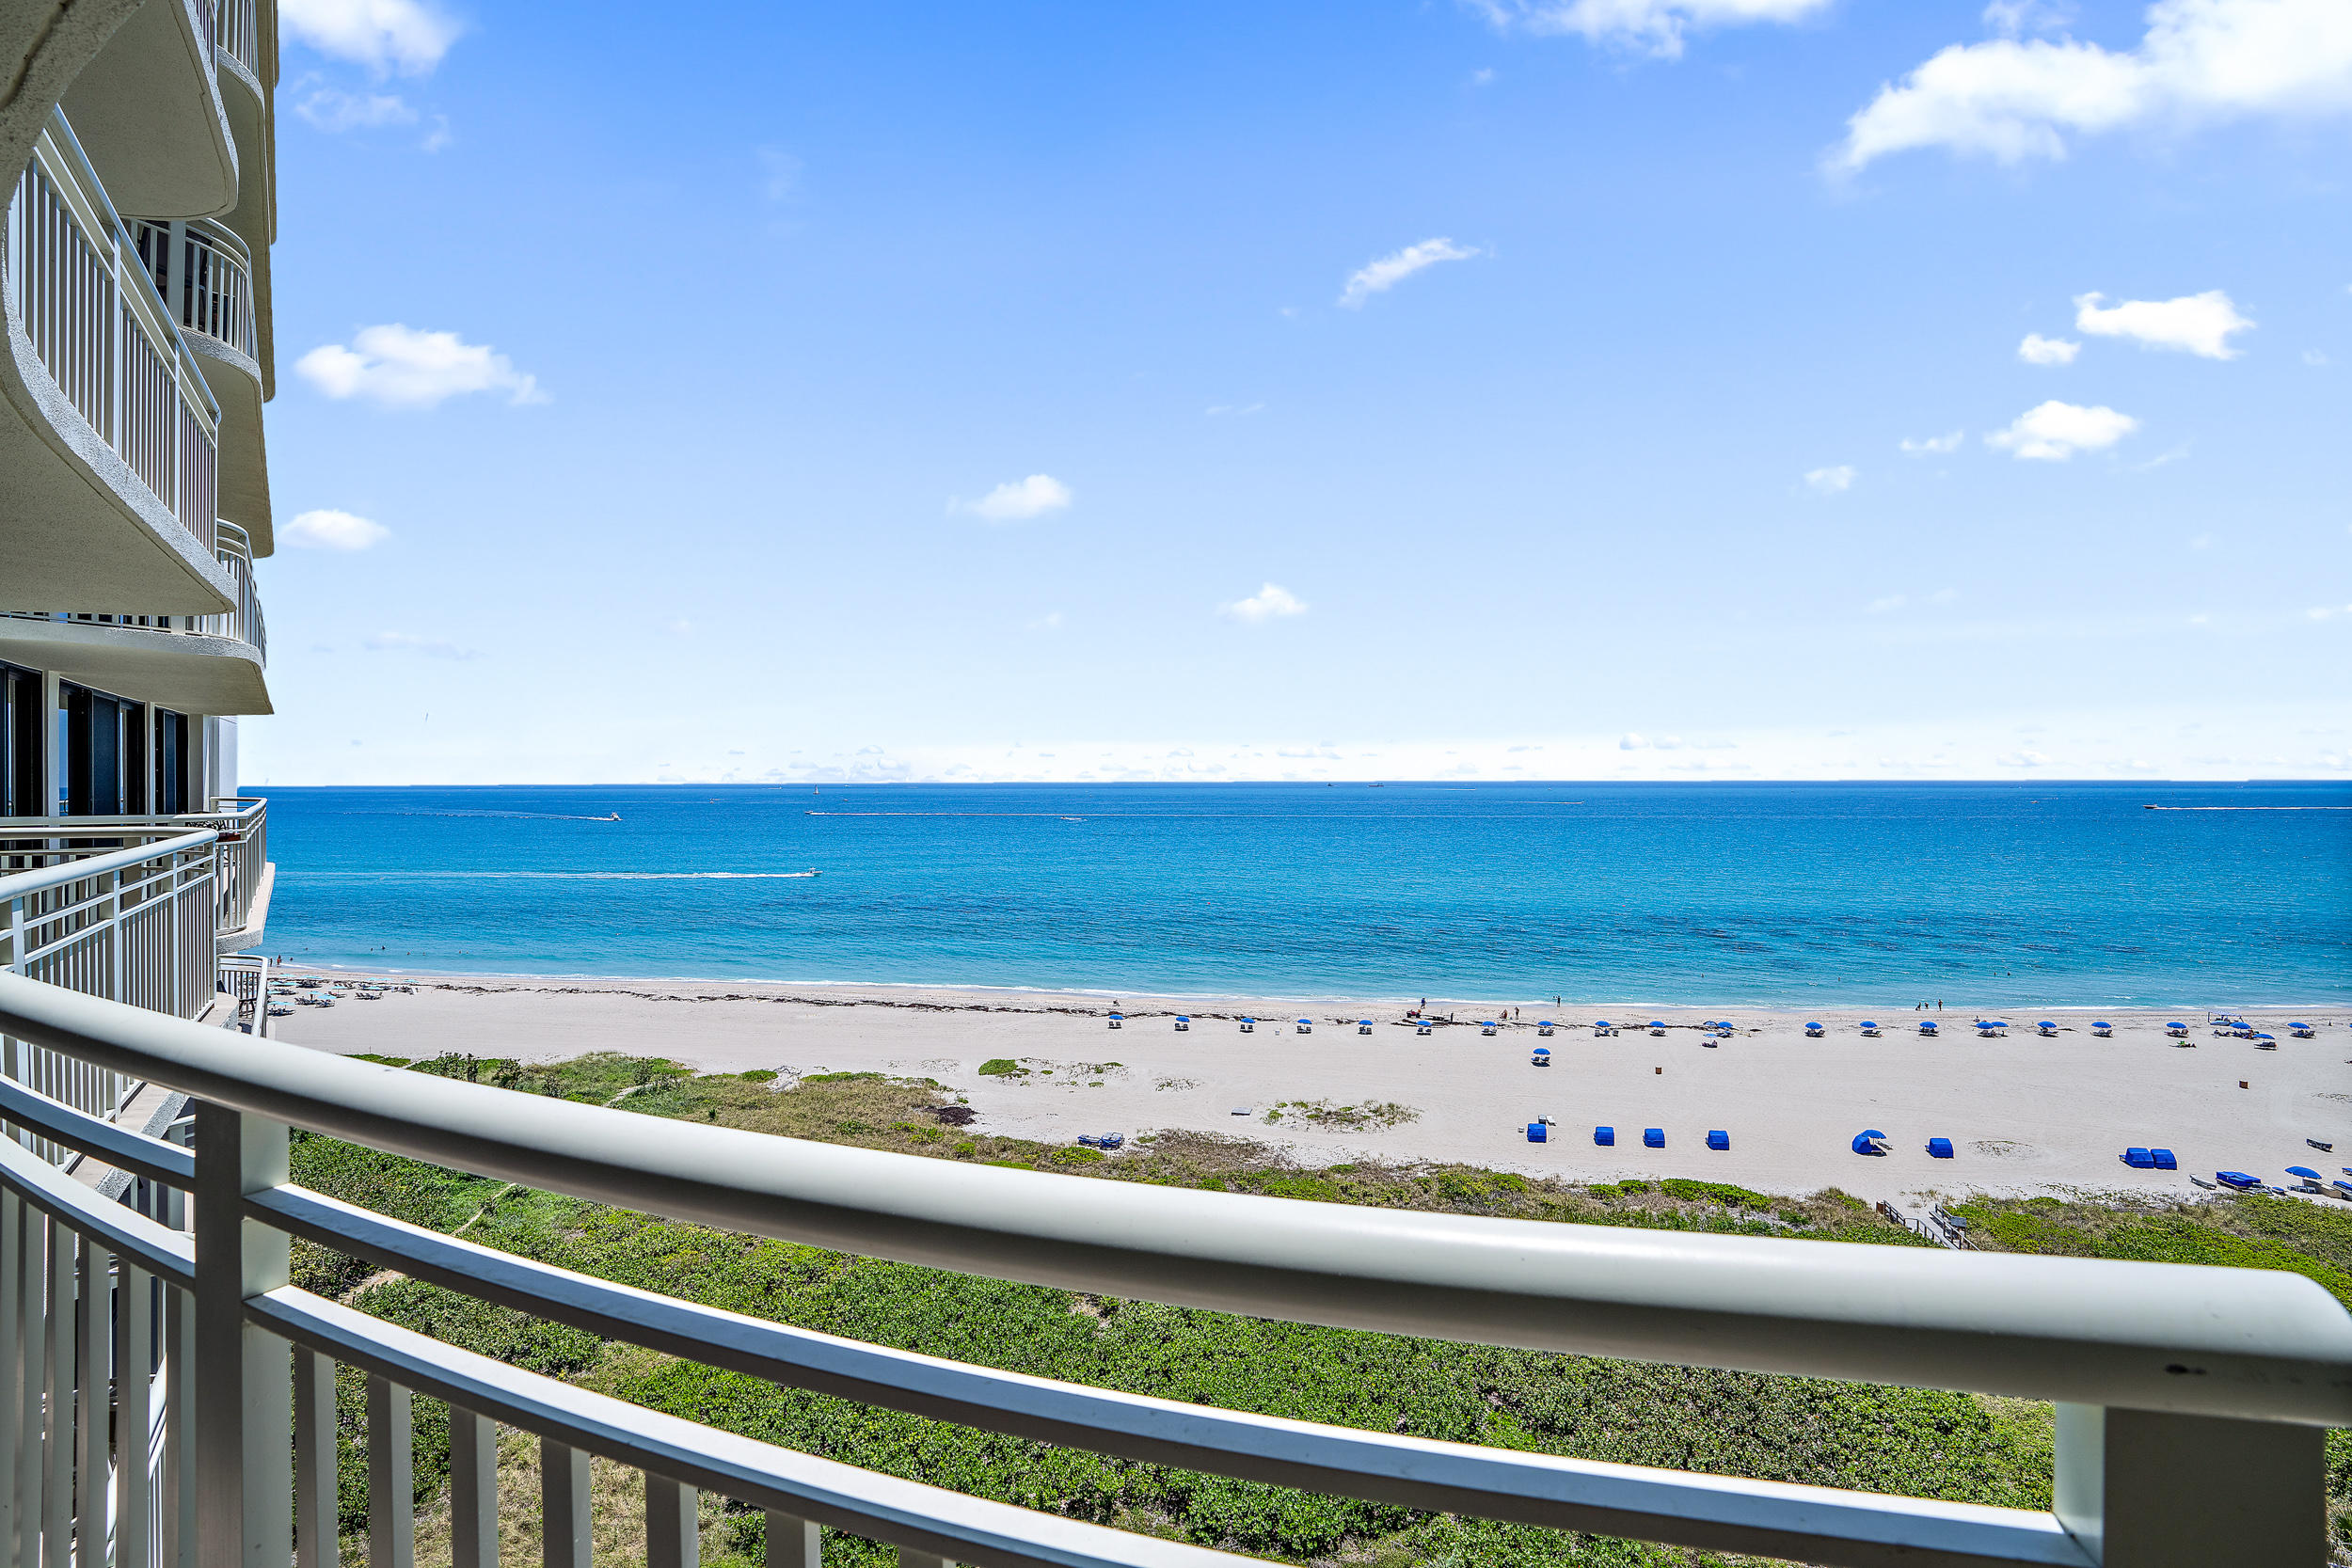 Tiara, sitting on the wide sandy beach at the south end of Singer Island is one of the tallest oceanfront condominiums in US. This 43 story tower offers a total of 328 residences. In the heart of Tiara is a very special condo that won't last long. With more than 1,500 square feet, this 2 bedroom, 2 bath residence with unobstructed ocean views, is a must see. Wake up to the amazing sight of the sparkling water from the master bedroom. Every room leads out to the spacious wrap around balcony.  Other features include updated bathrooms, impact glass, and a Bosch washer and dryer. The open kitchen has granite counters and backsplash as well as stainless steel Whirlpool appliances. Tiara's amenities include the famous Marquis Rooftop Owners Lounge, the Gazebo Restaurant, beach service and more. Other amenities include 400 feet of beautiful white sand beach, a heated pool and Jacuzzi, three tennis courts, a billiards room & two card rooms, a cozy library, a his/her spa, the, valet parking, concierge & covered parking.